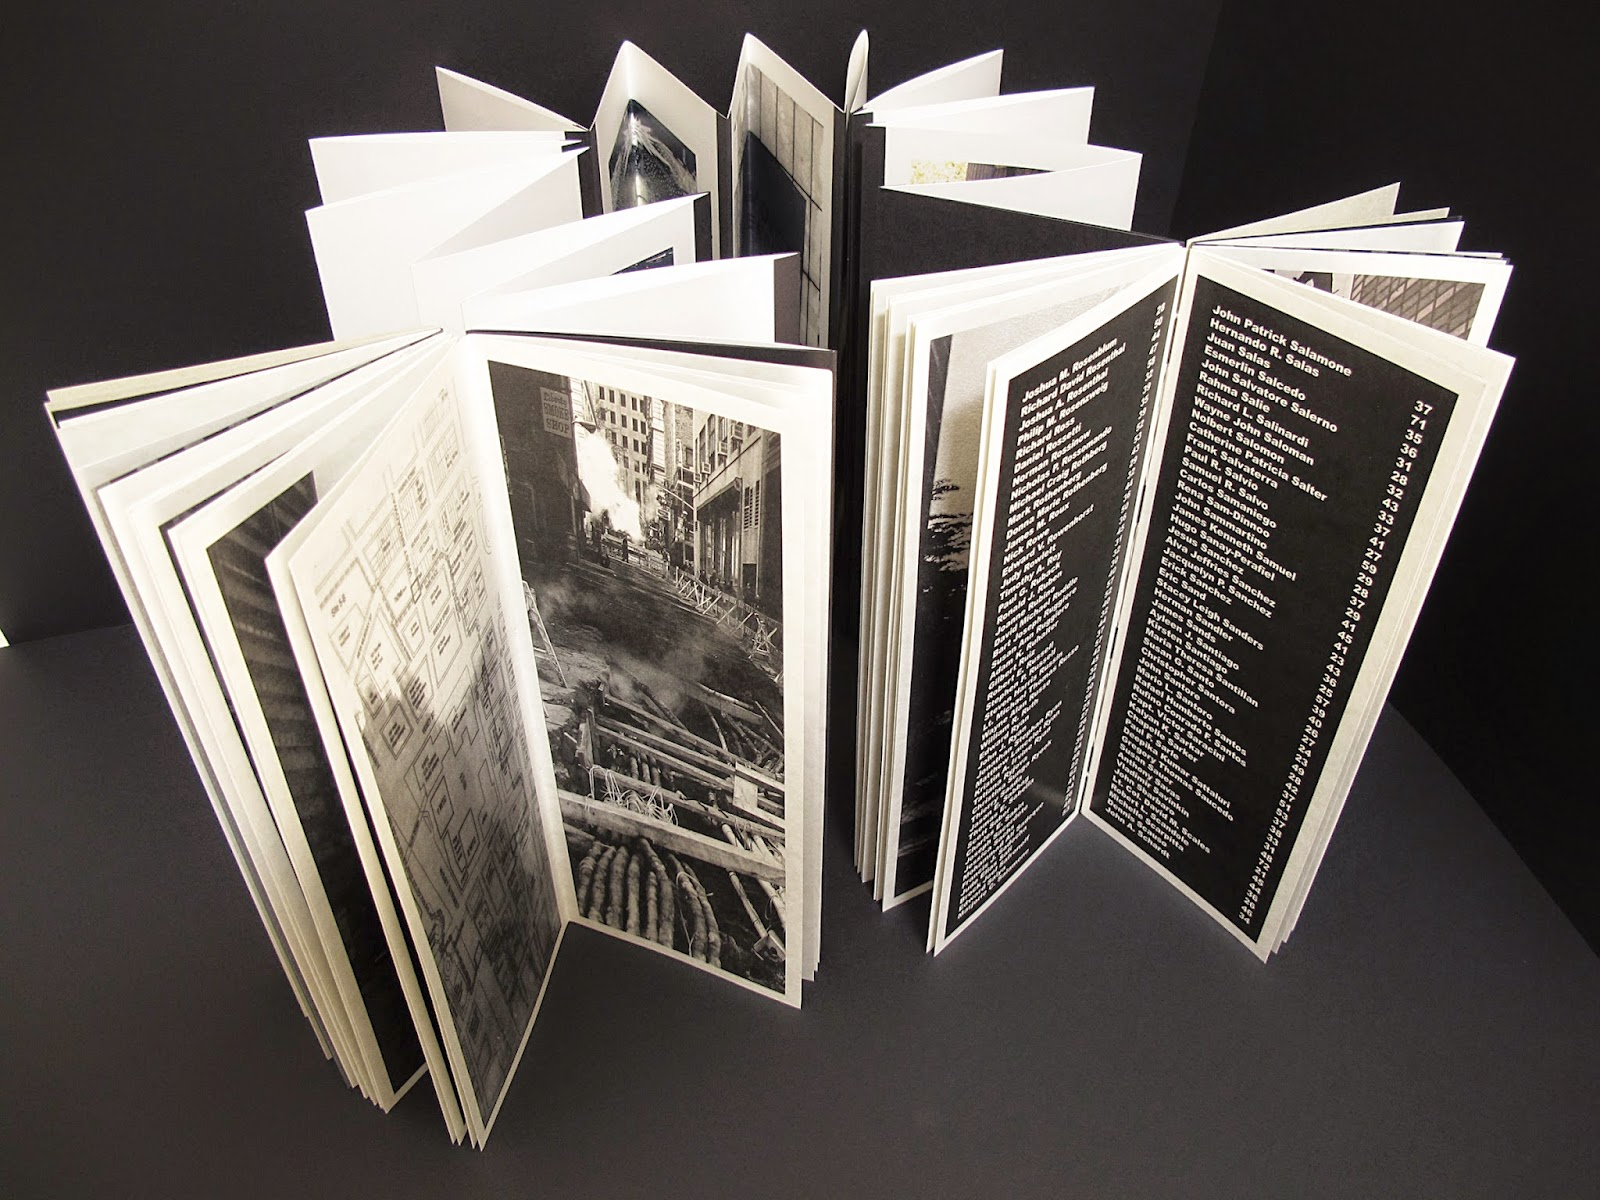 Hecatombe 9-11: Artist's Book at the National 9-11 Memorial Museum